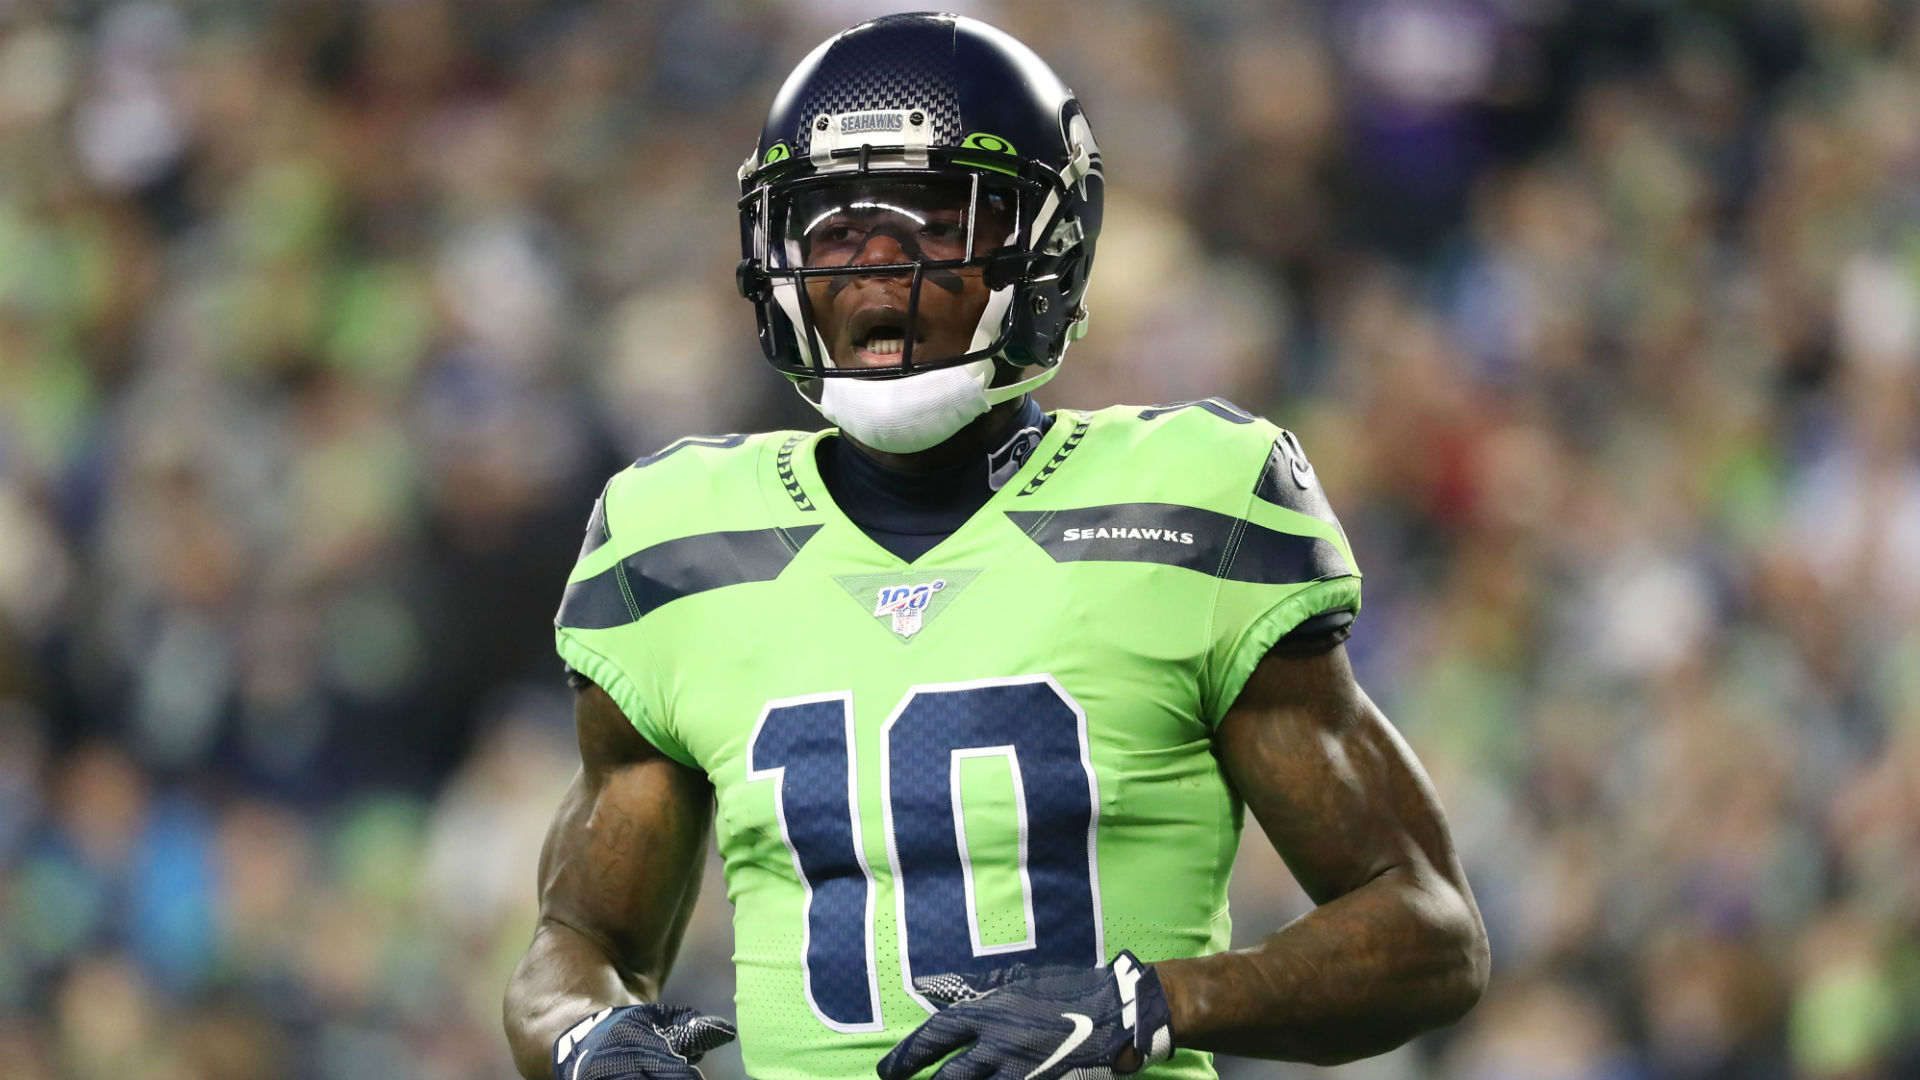 Josh Gordon Fantasy Outlook: How Seahawks signing Gordon impacts DK Metcalf, Tyler Lockett 1